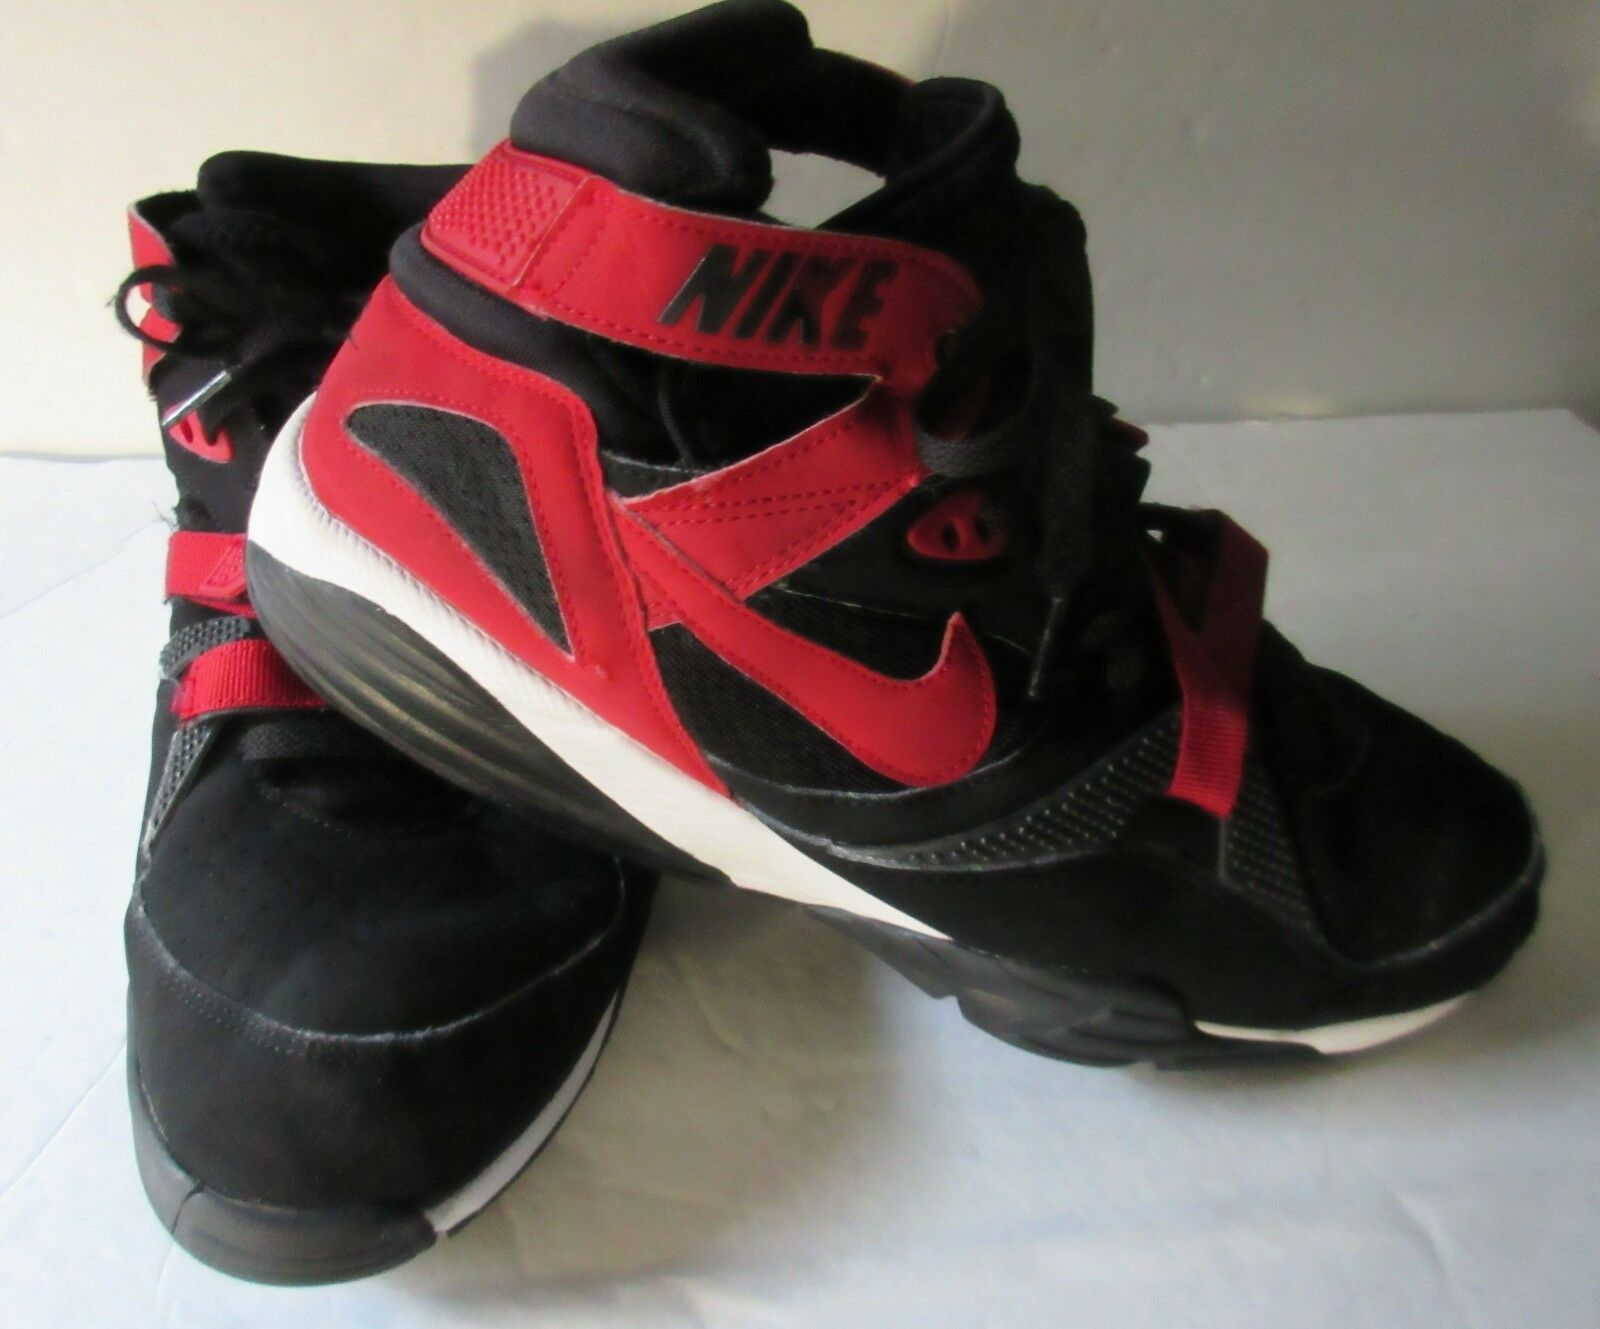 Nike Men's Air 3097 48-003 Sneakers Sz. 12 The most popular shoes for men and women